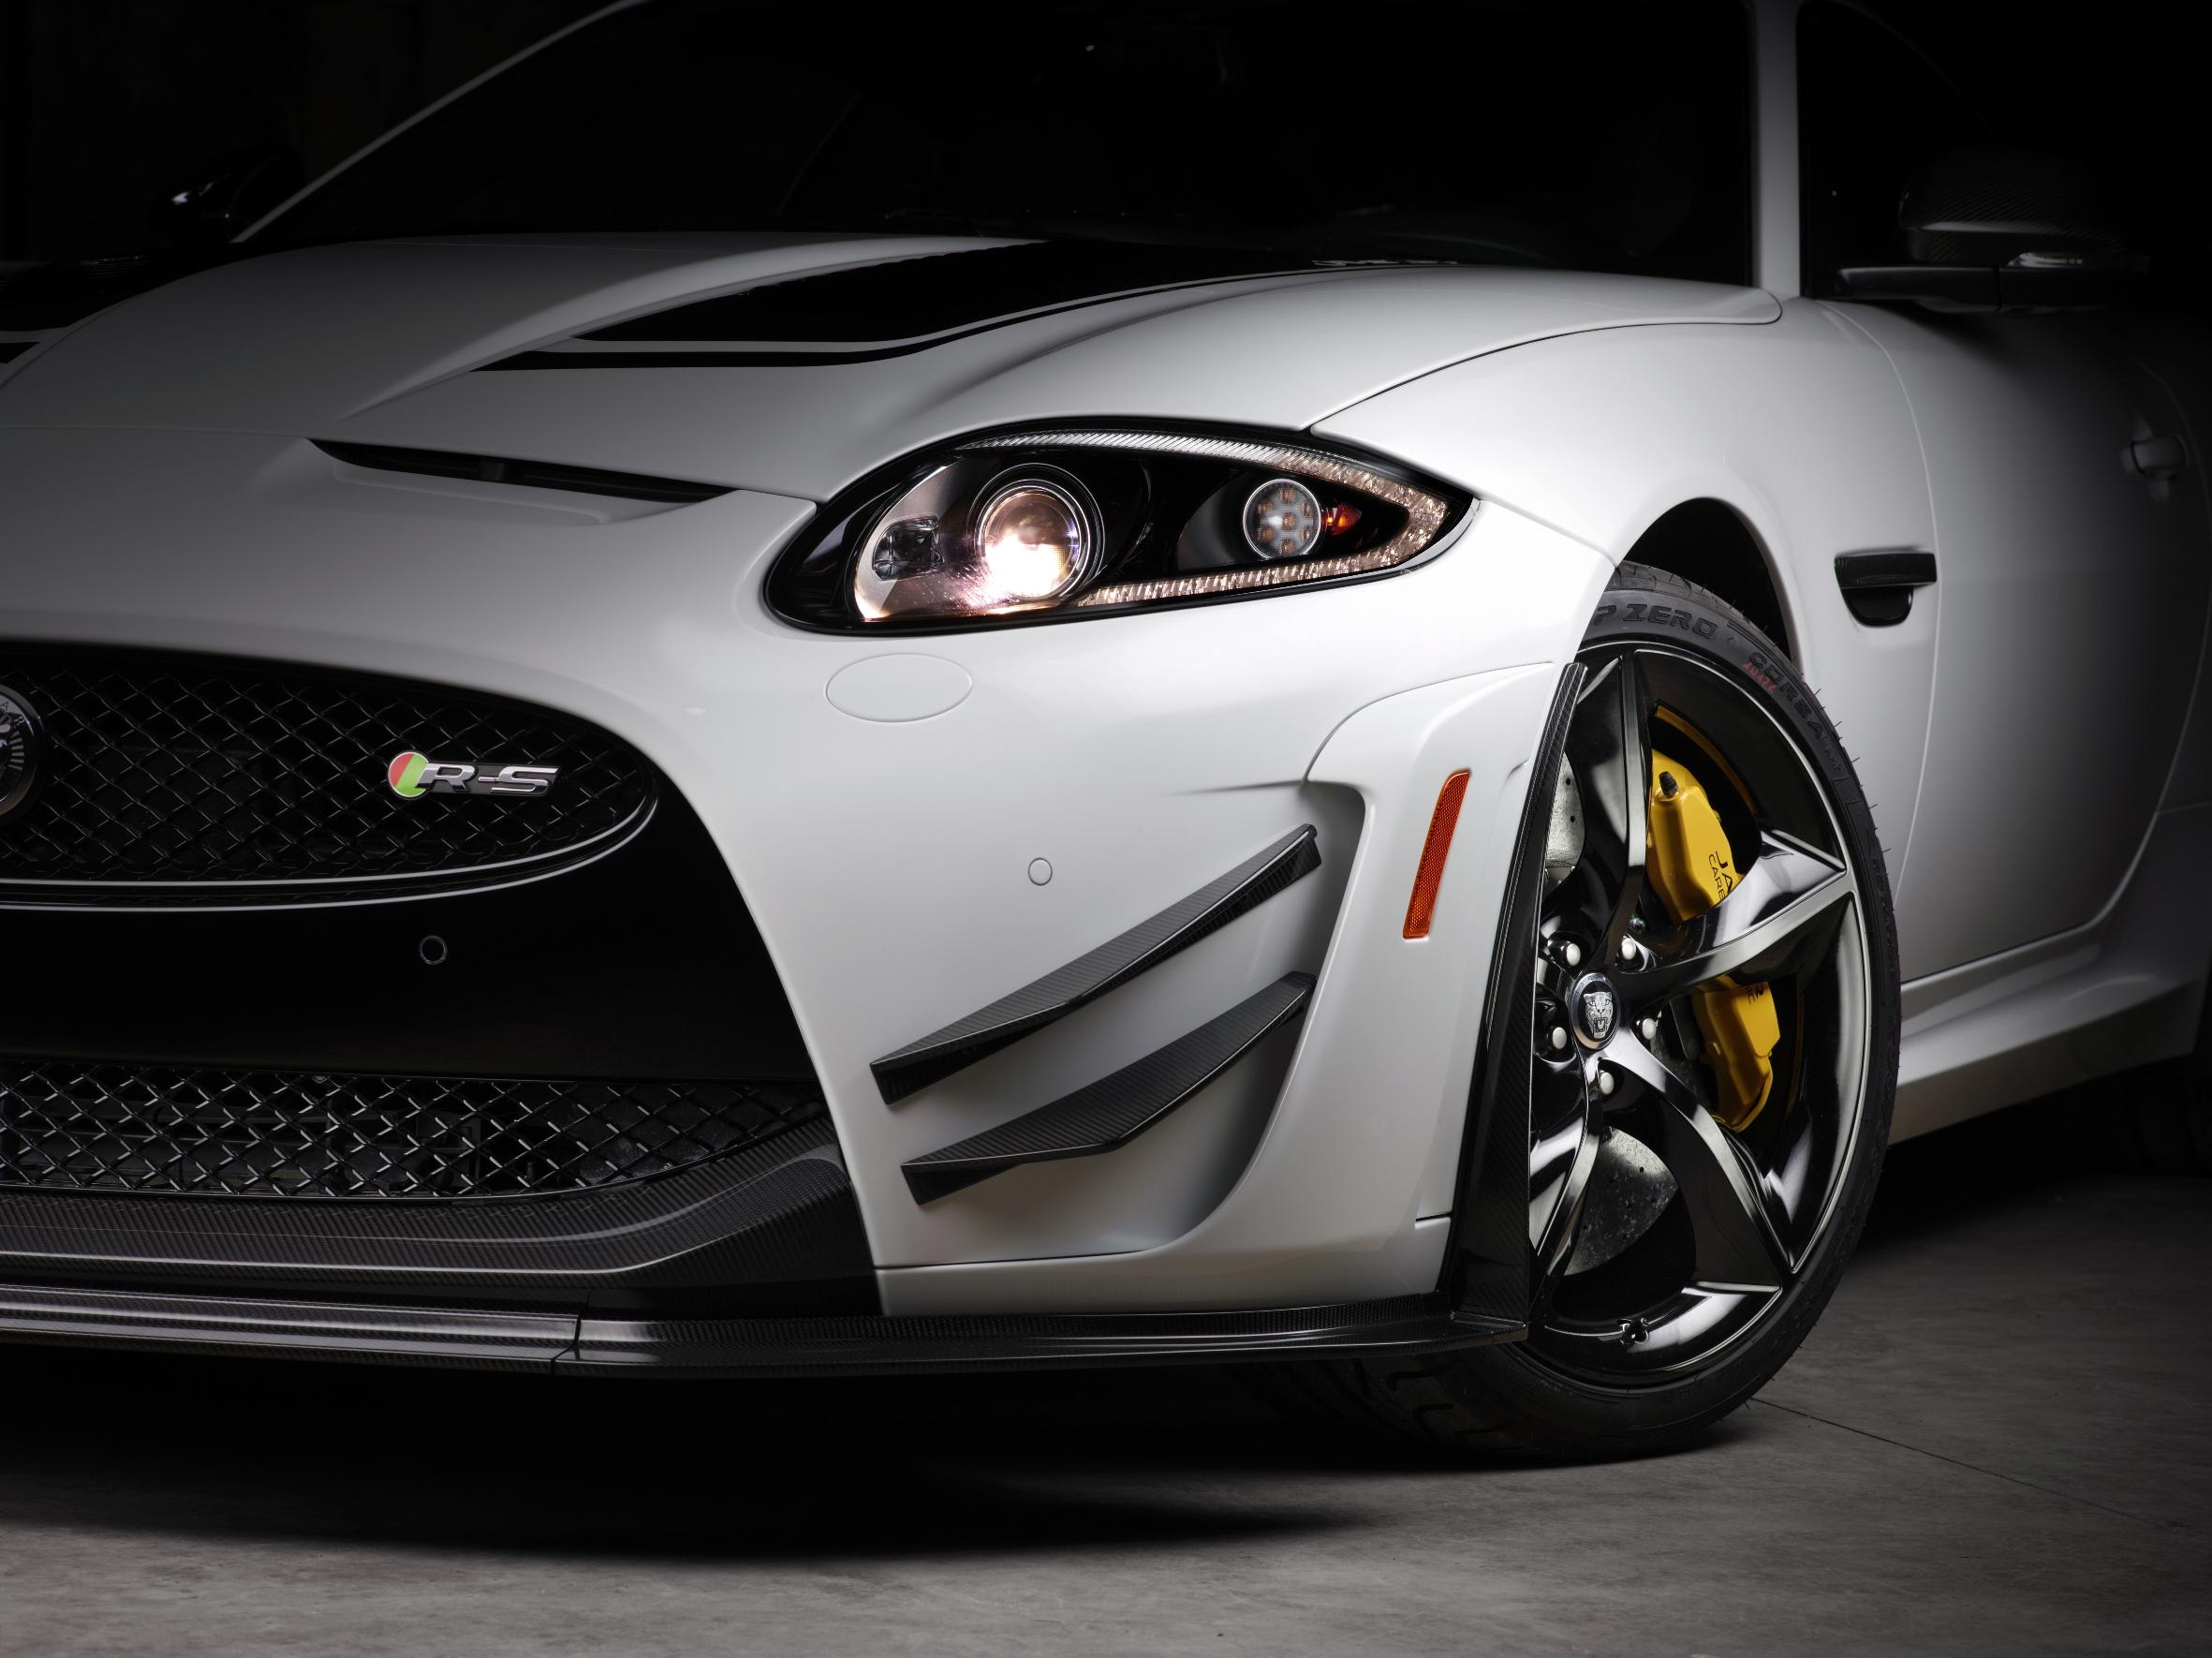 Jag_XKR-S_GT_Image_22_260313